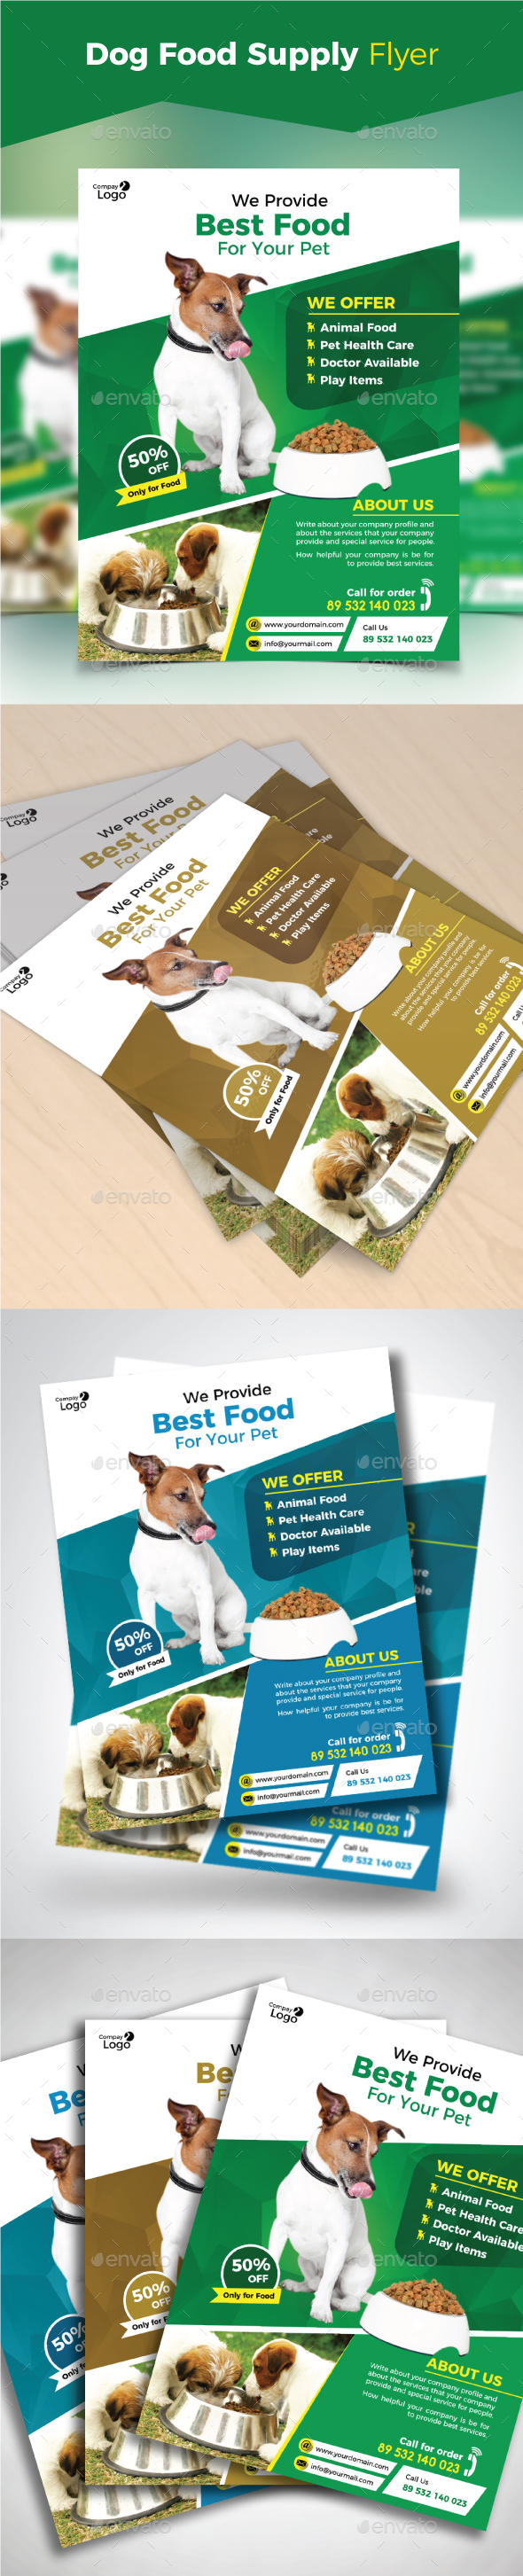 Dog Food Supply Flyer - Commerce Flyers